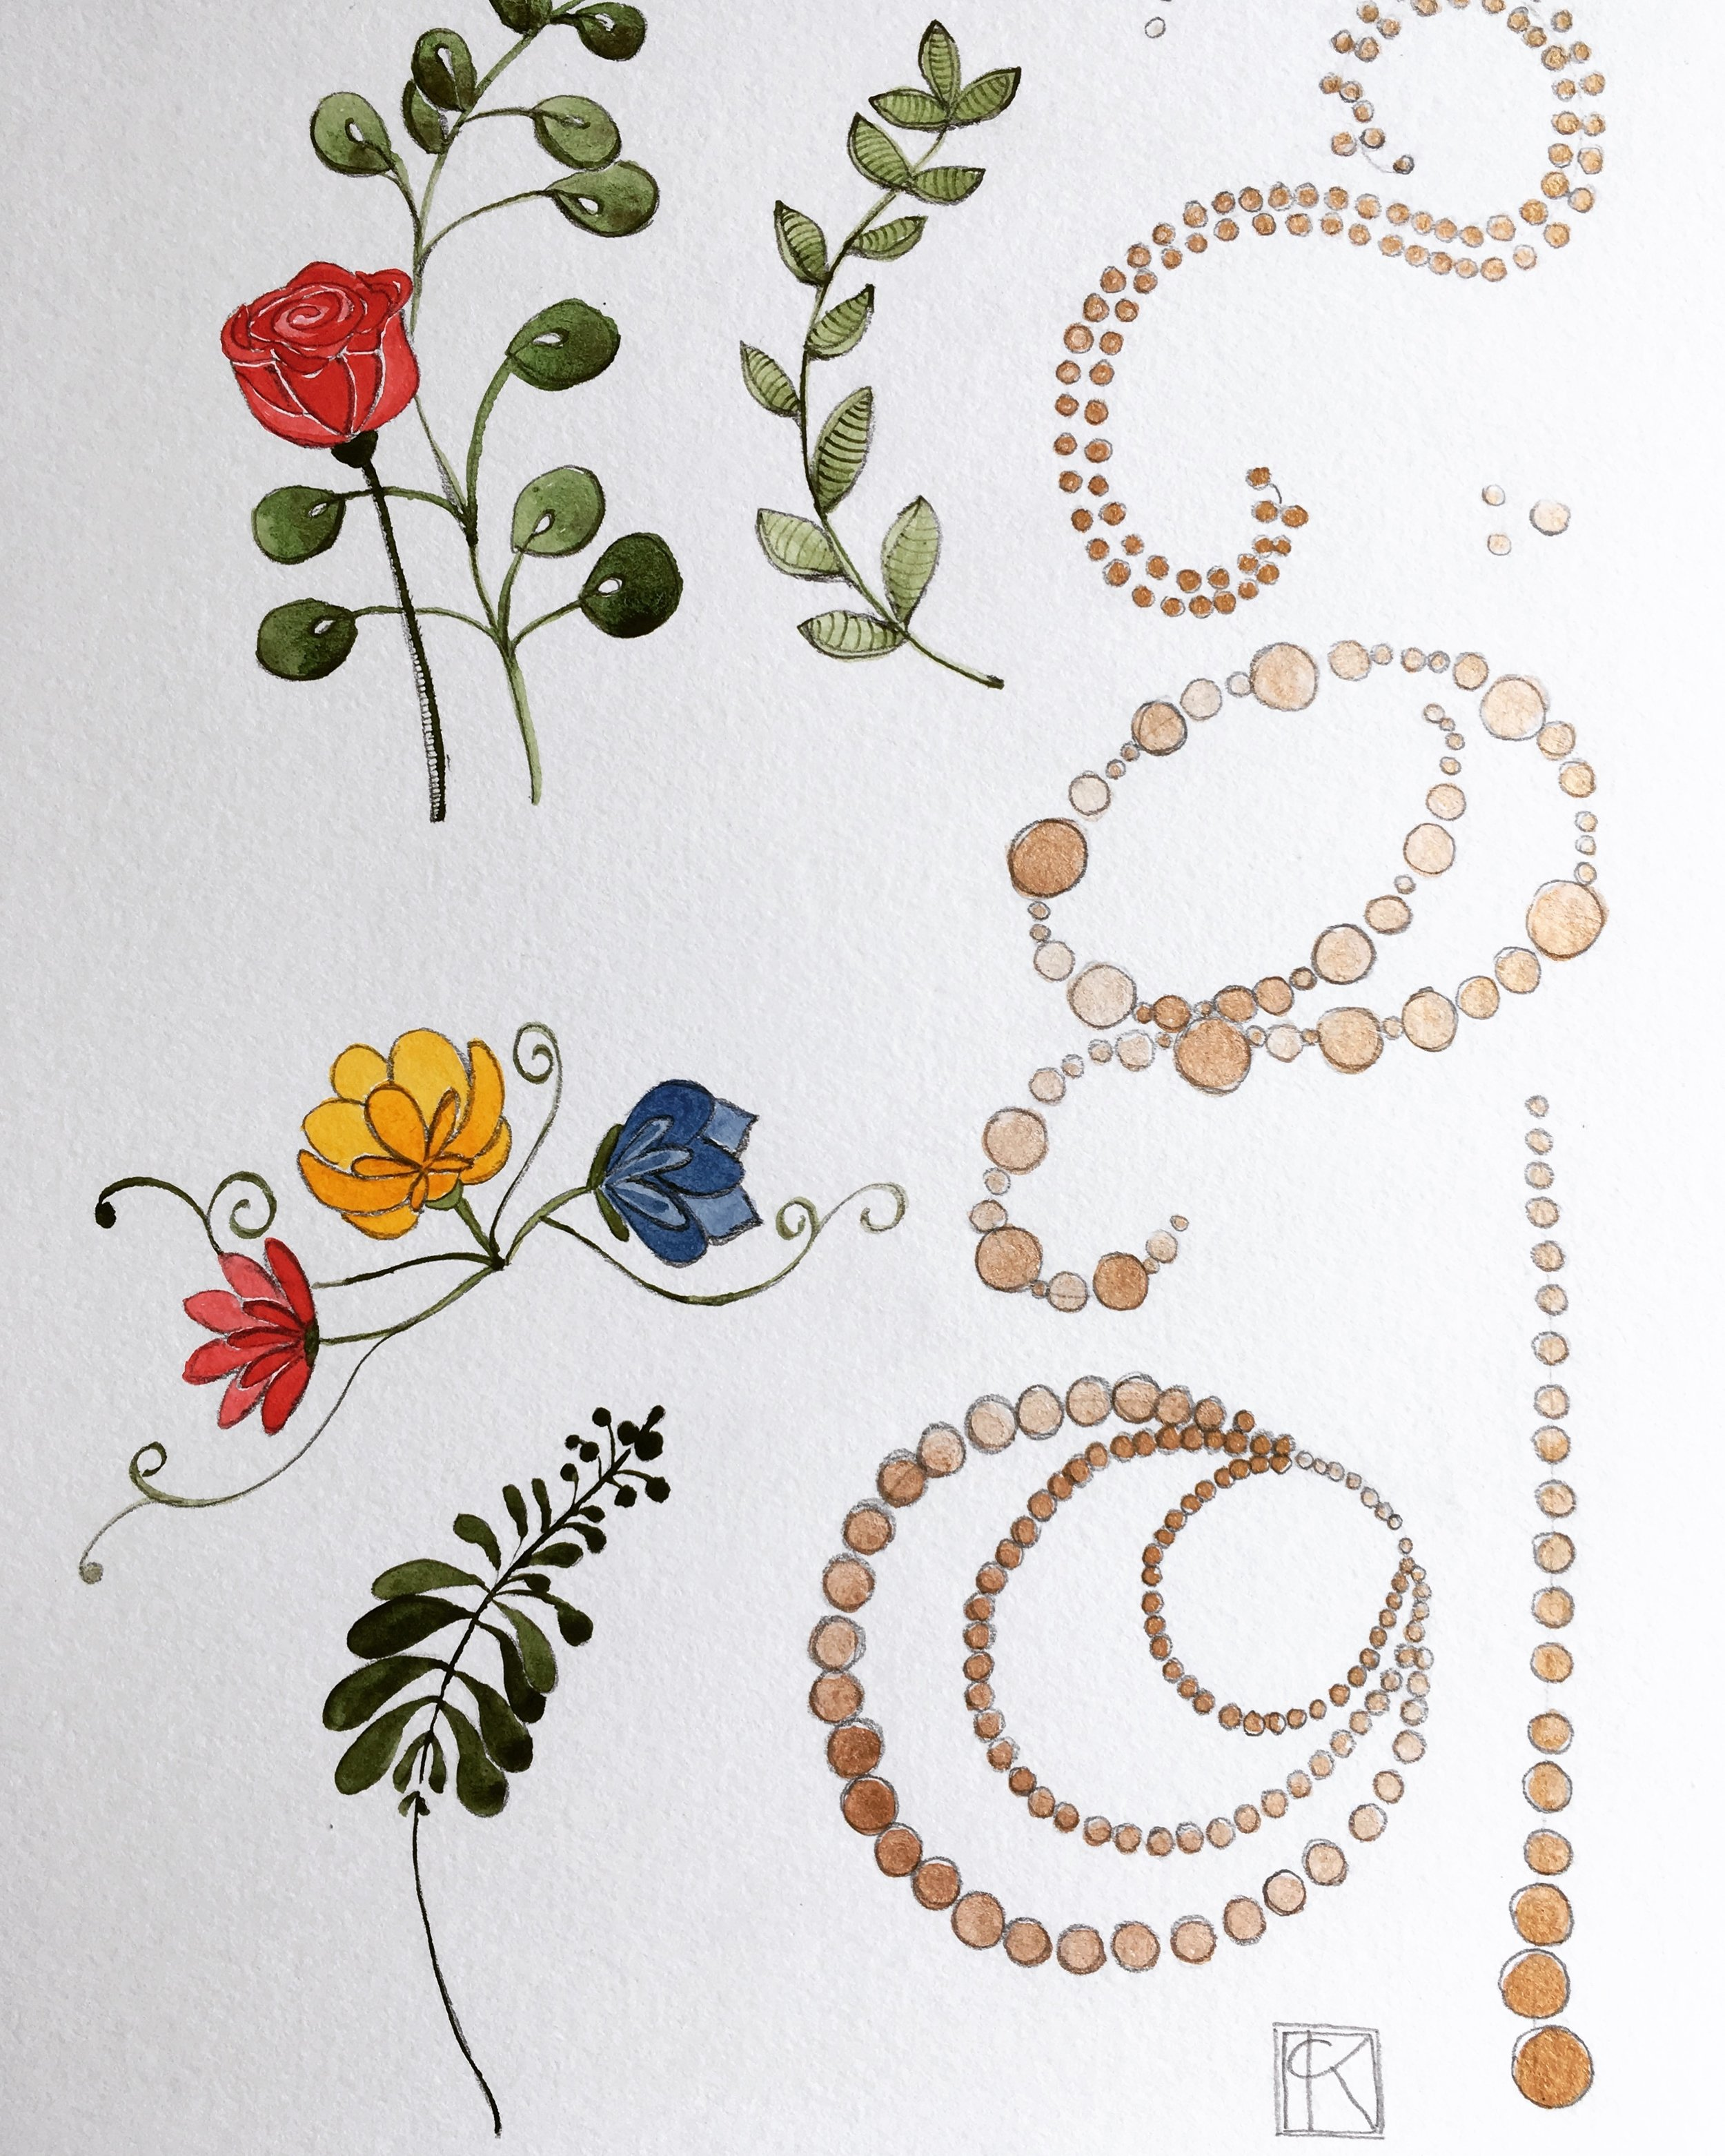 roses, flowers, and golden beads